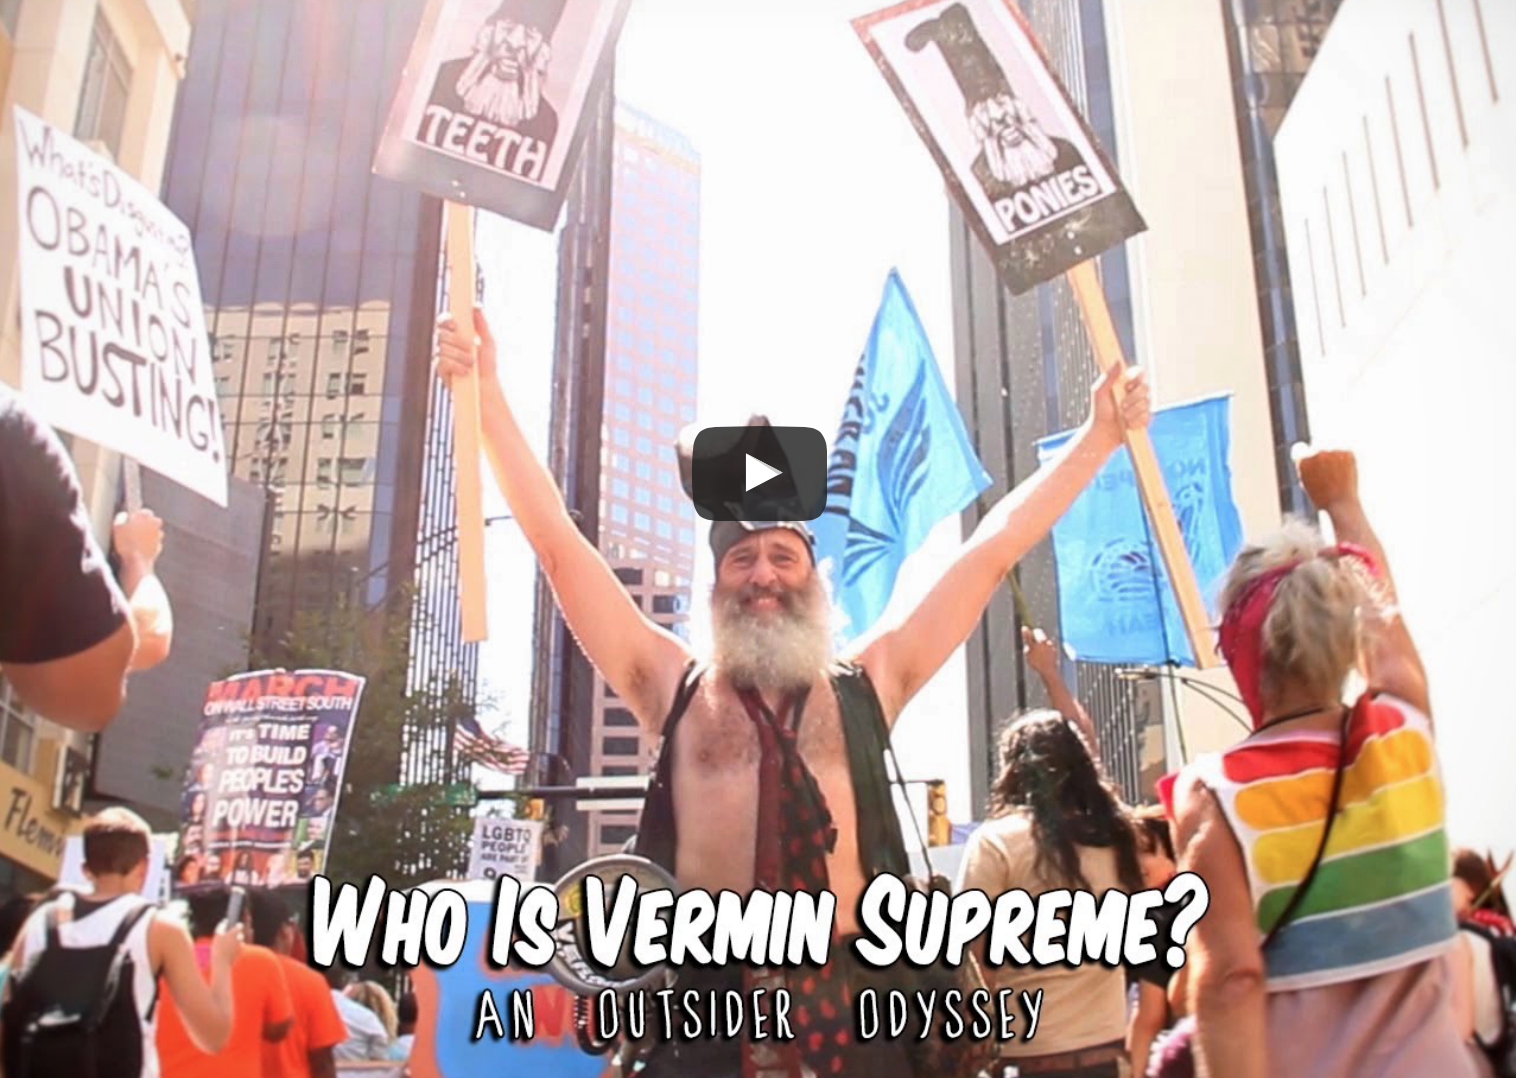 [HILARIOUS VIDEO] Don't Like Trump? Can't Stand Cruz? Here's Your Alternative! Vermin Supreme!